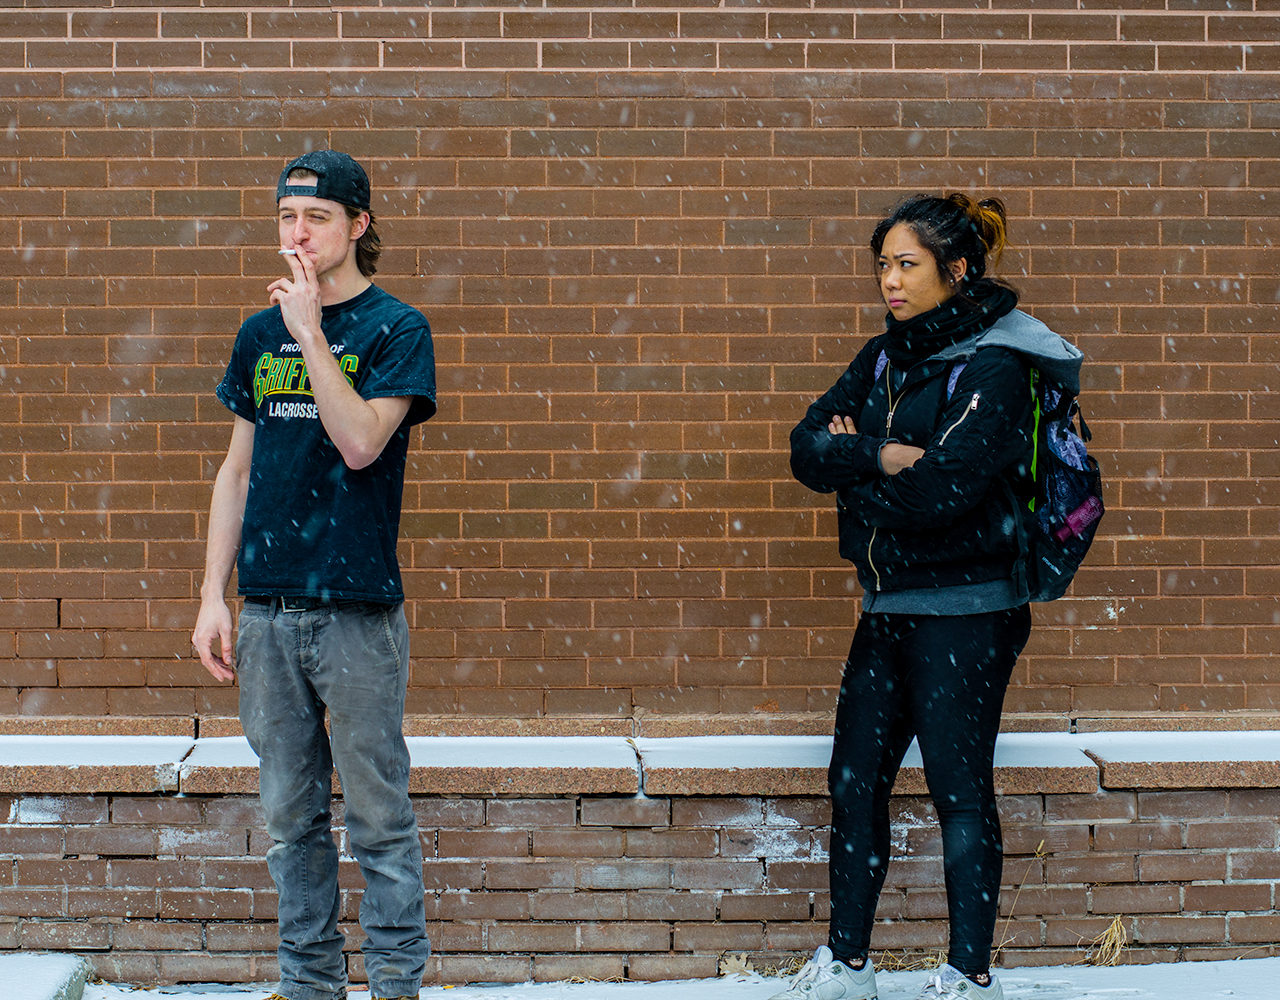 ban smoking on college campuses essay Tobacco-free campuses help student smokers quit with the recent spike in tobacco-free college campuses and smoking bans.